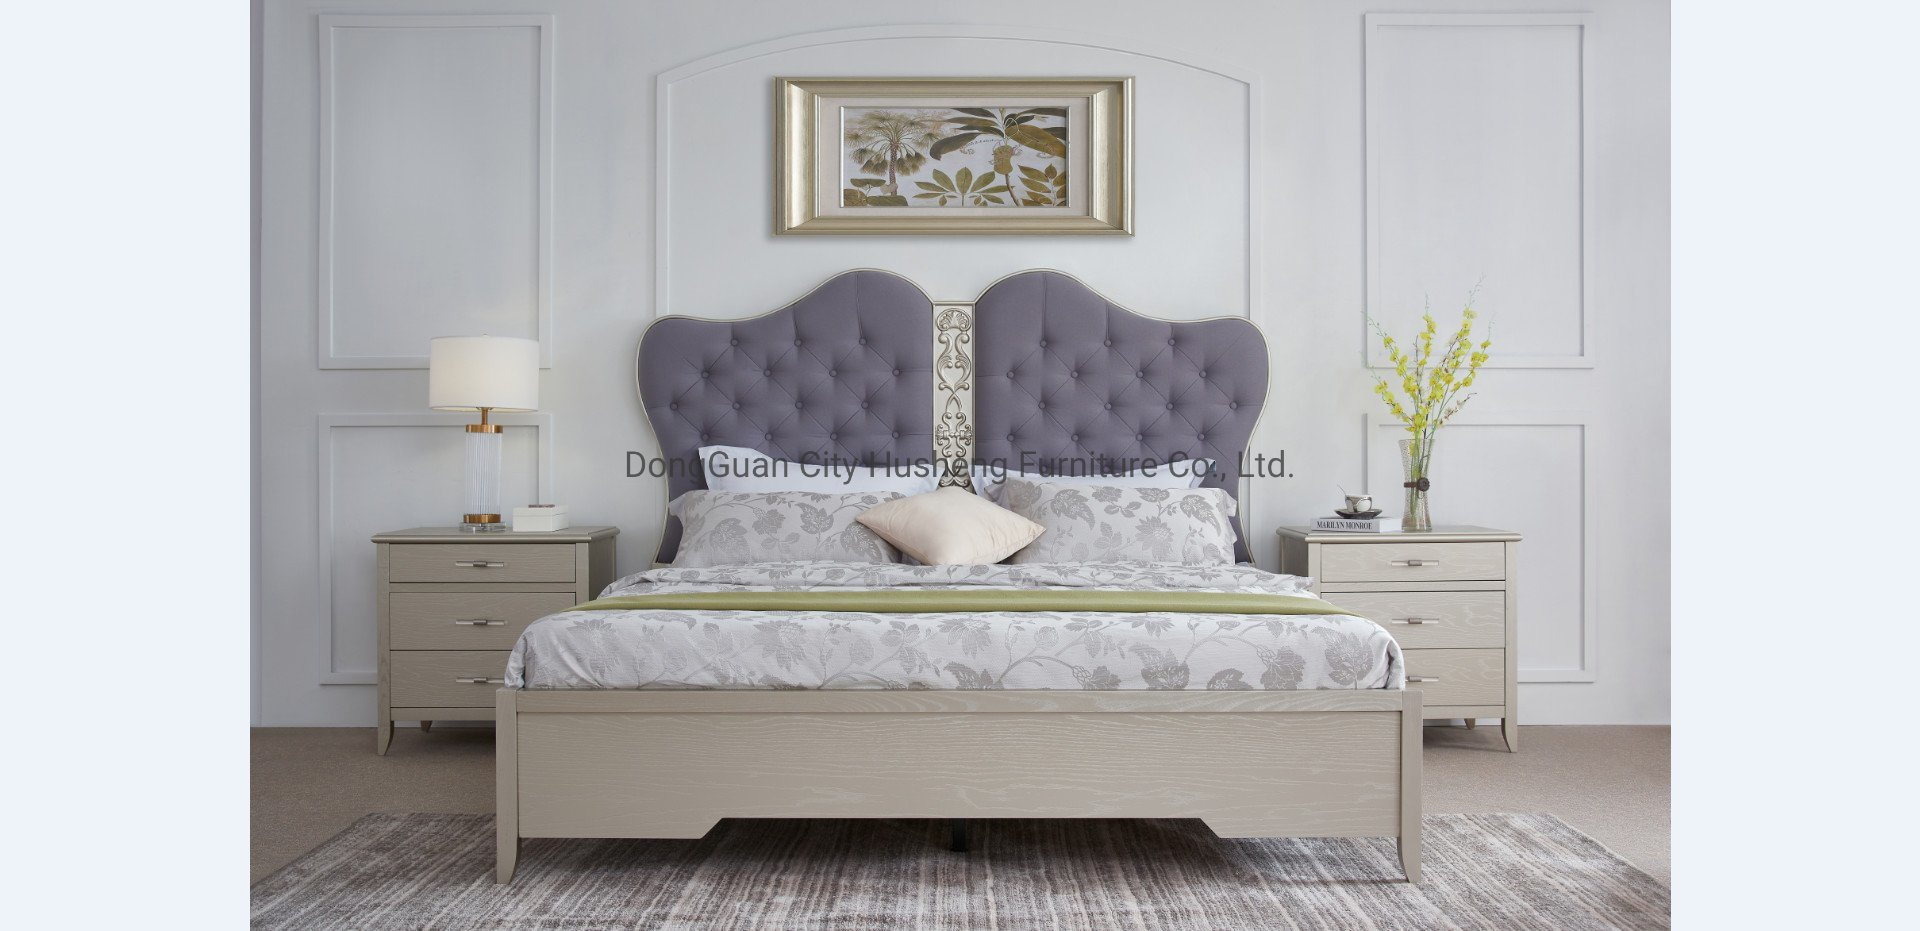 China 2020 New Design Modern Simple Bed Home Bed Hotel Bedroom Furniture Set Photos Pictures Made In China Com